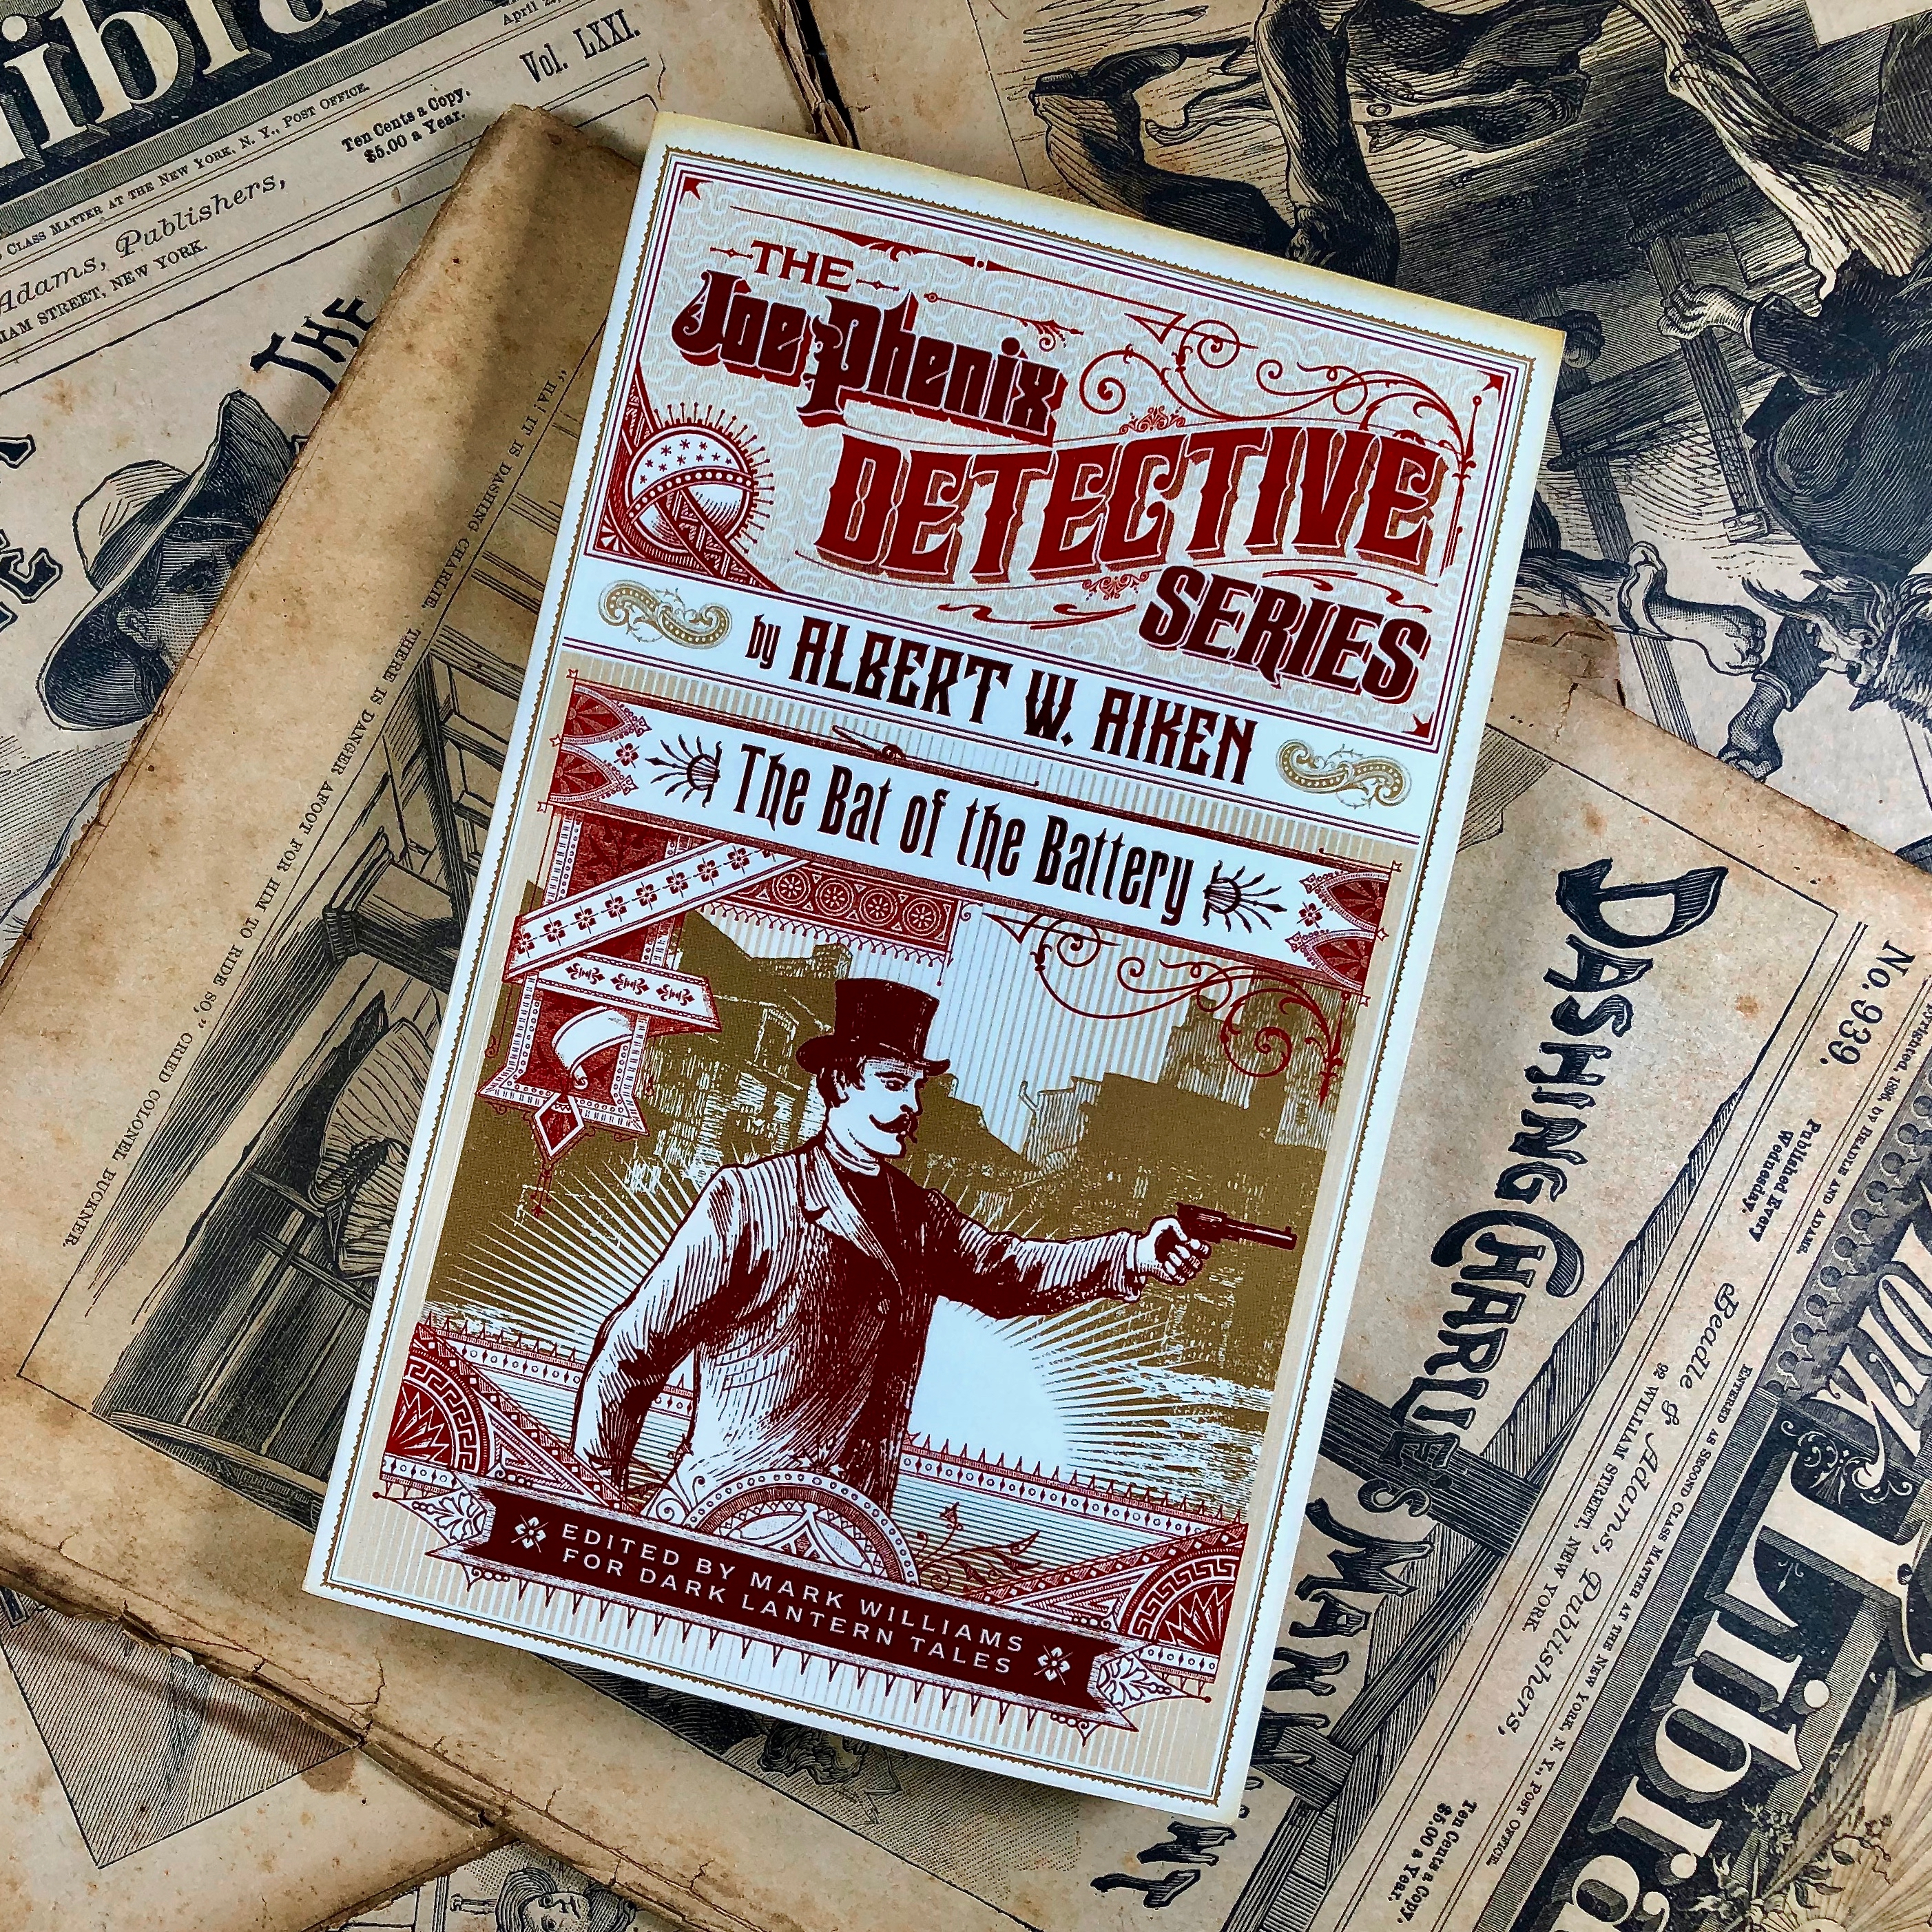 The Bat of the Battery, The Joe Phenix Detective Series